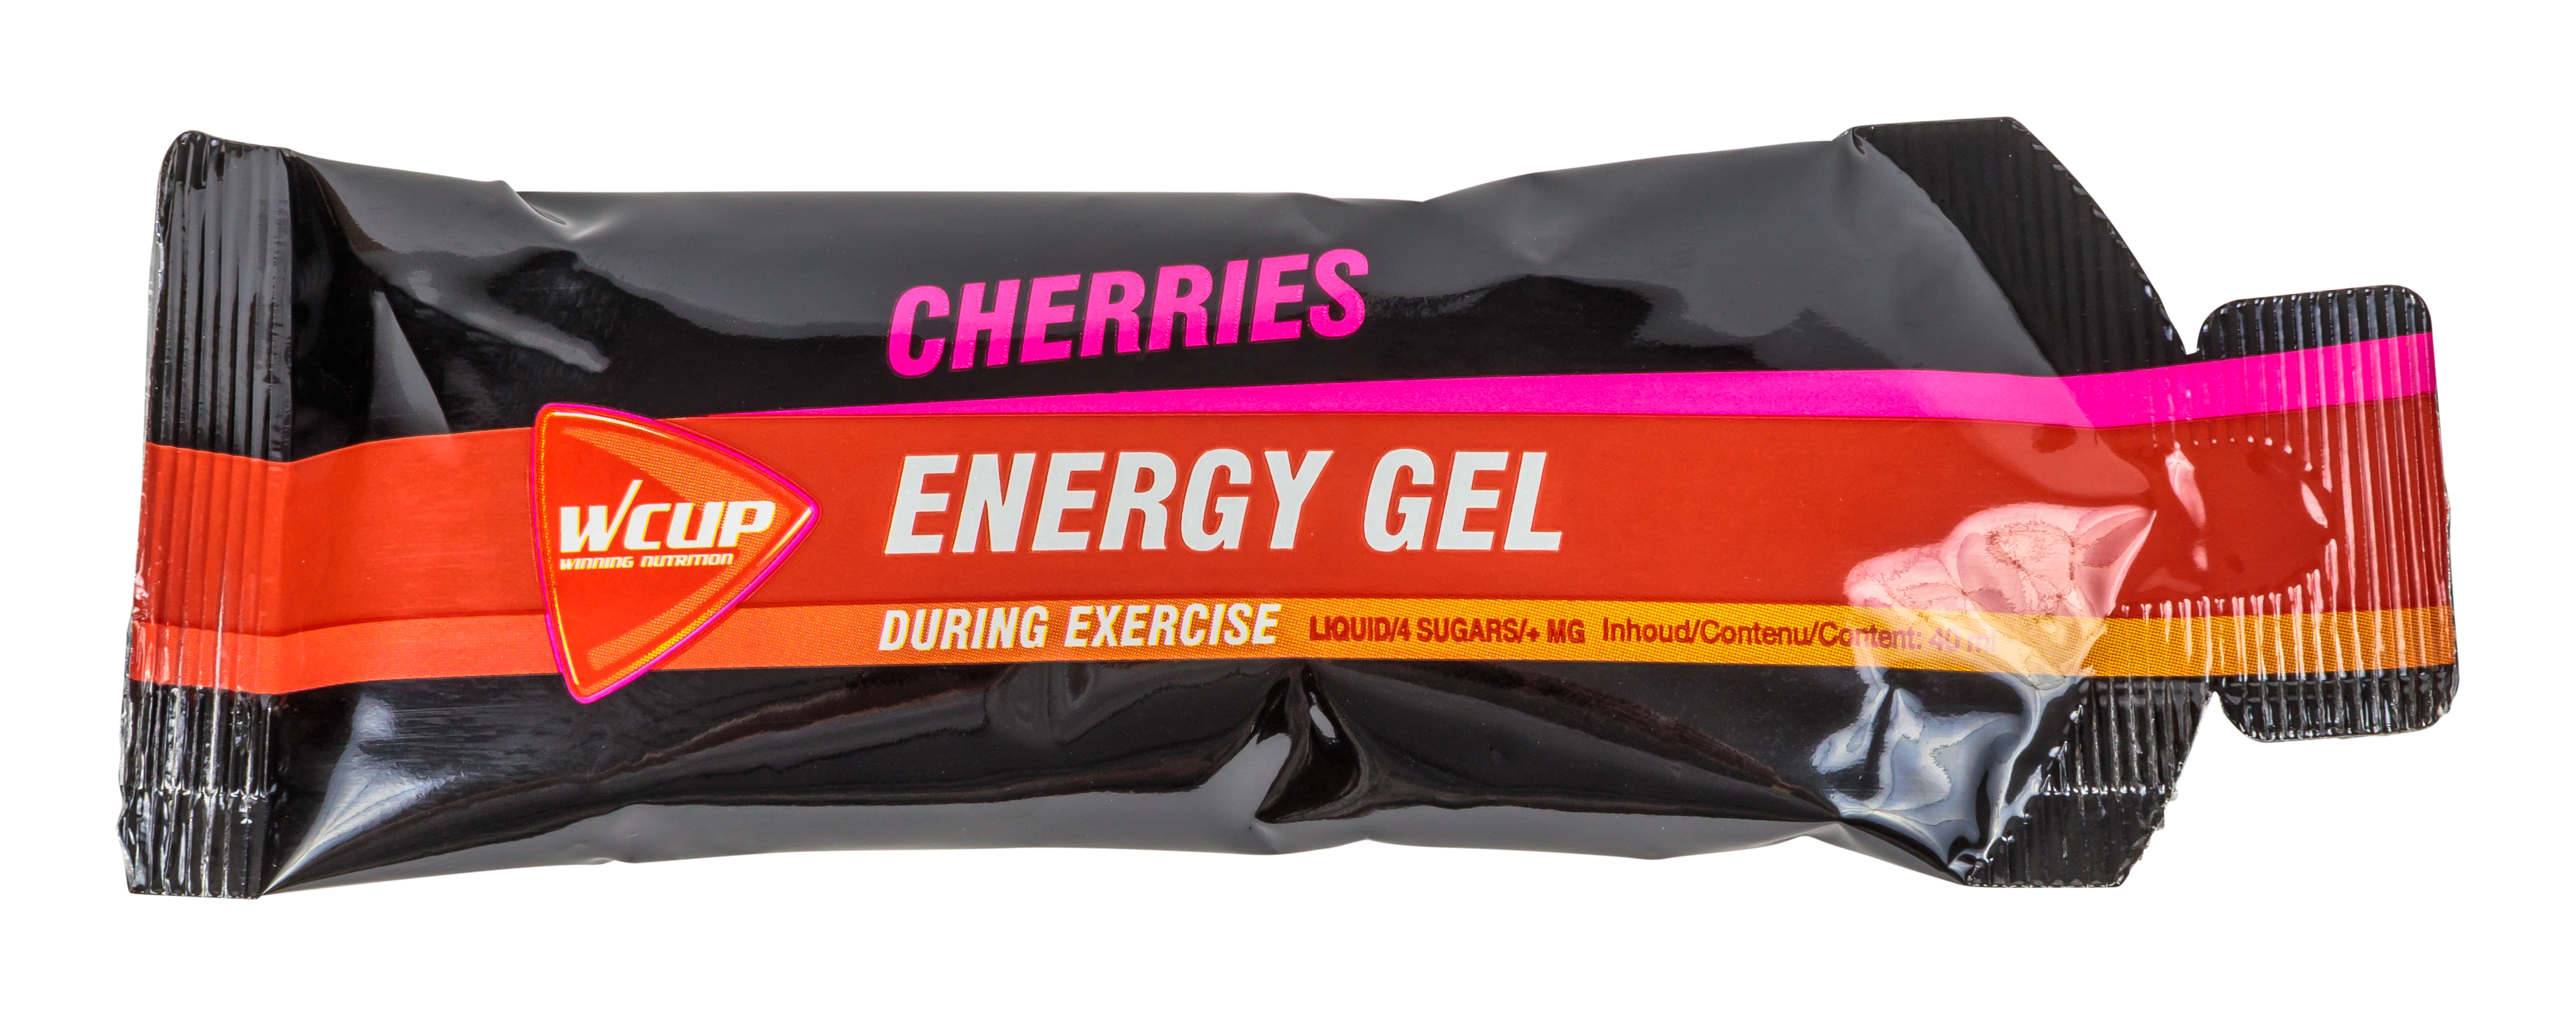 Energy Gel Cherries (1 pièce)